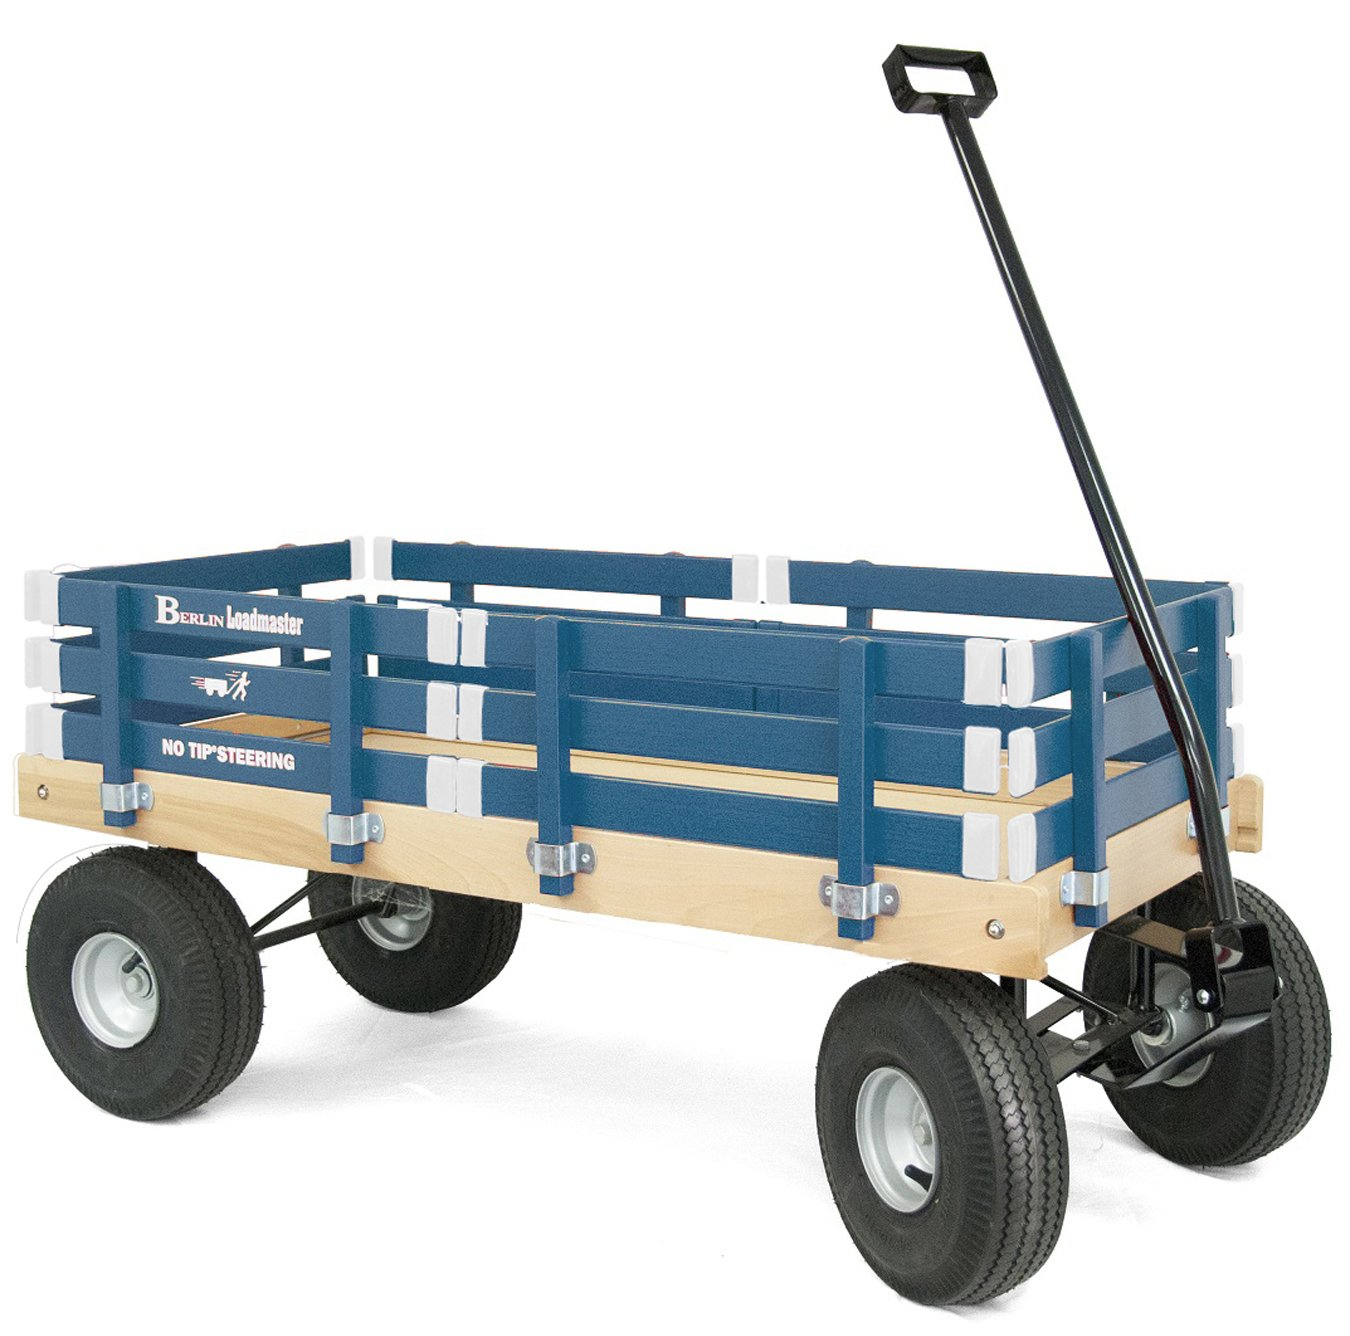 Berlin F600 Amish-Made All-Terrain Tires Loadmaster Ride-On Wagon, Navy by Berlin